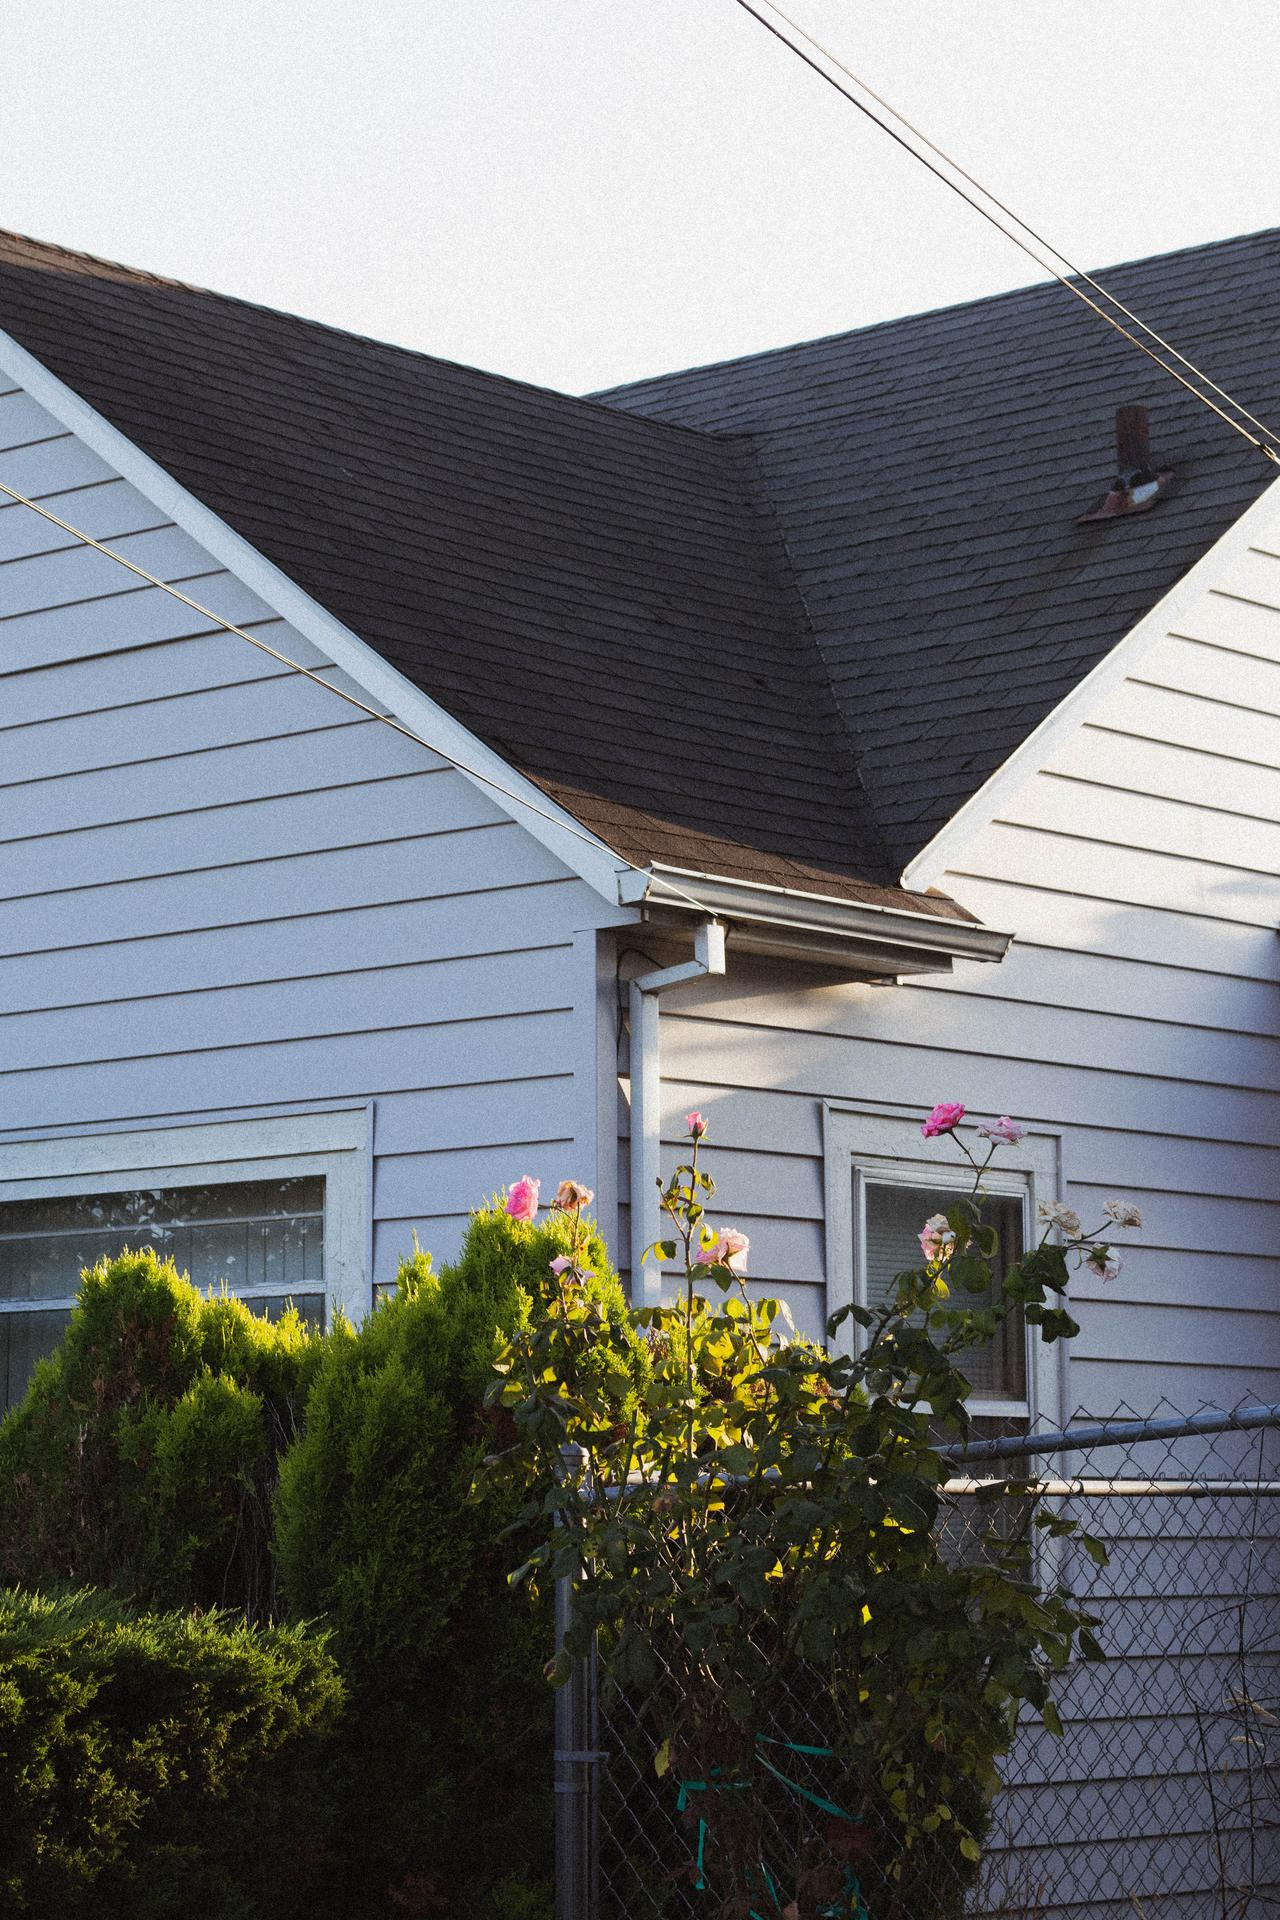 Los Angeles roofing companies can help upgrade your roof to protect your home for years to come.